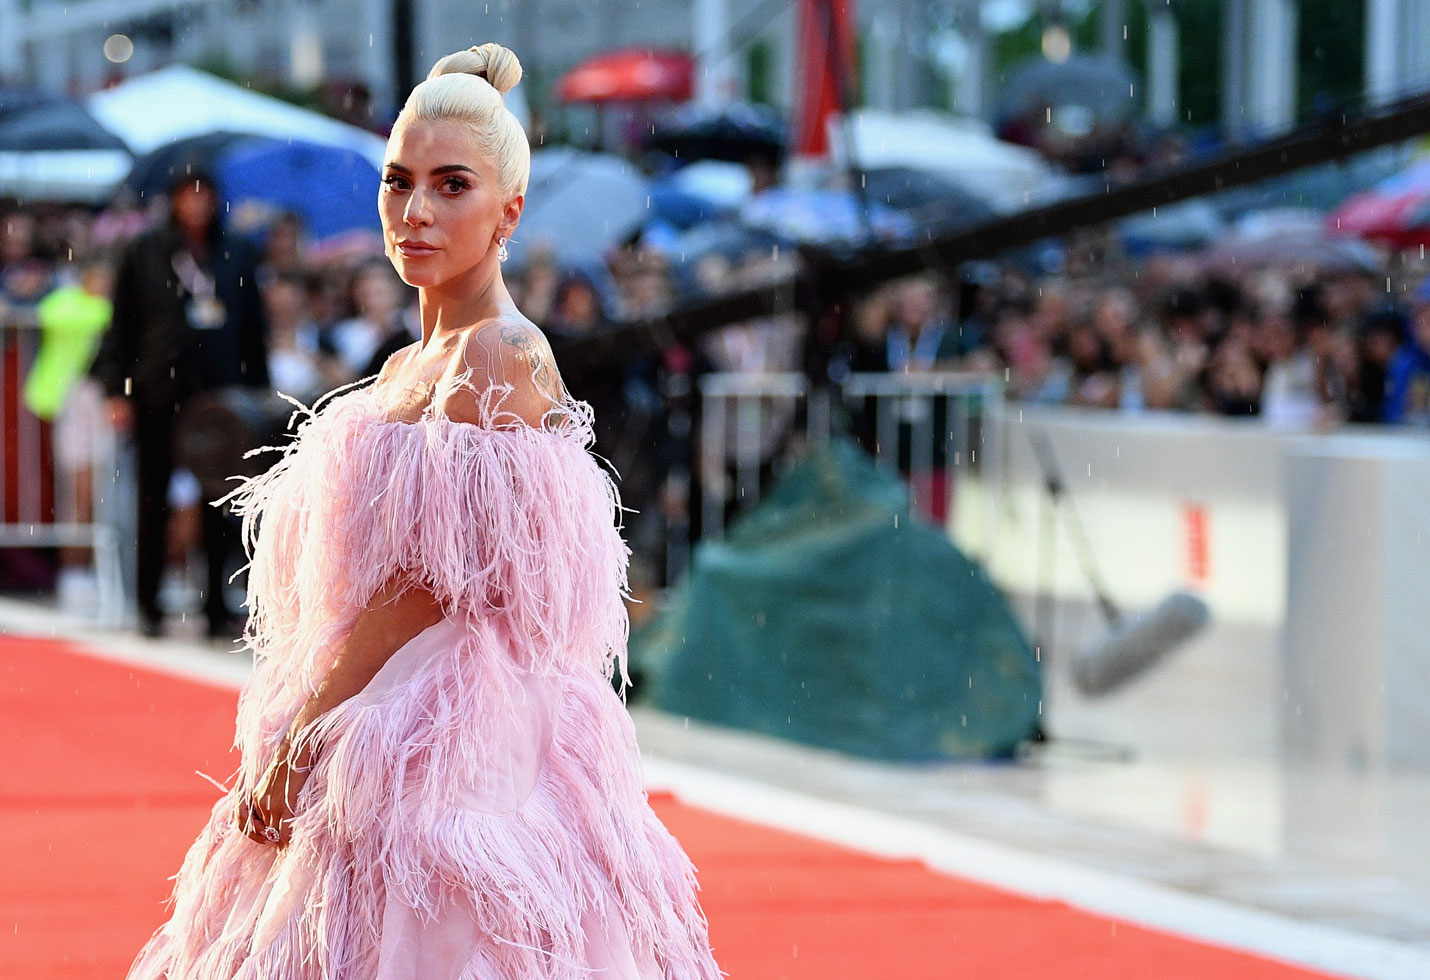 f58e085577f Lady Gaga Stuns In Pink Dress On Rainy Venice Film Festival Red Carpet. The  pop superstar shines in 'A Star Is Born' ...